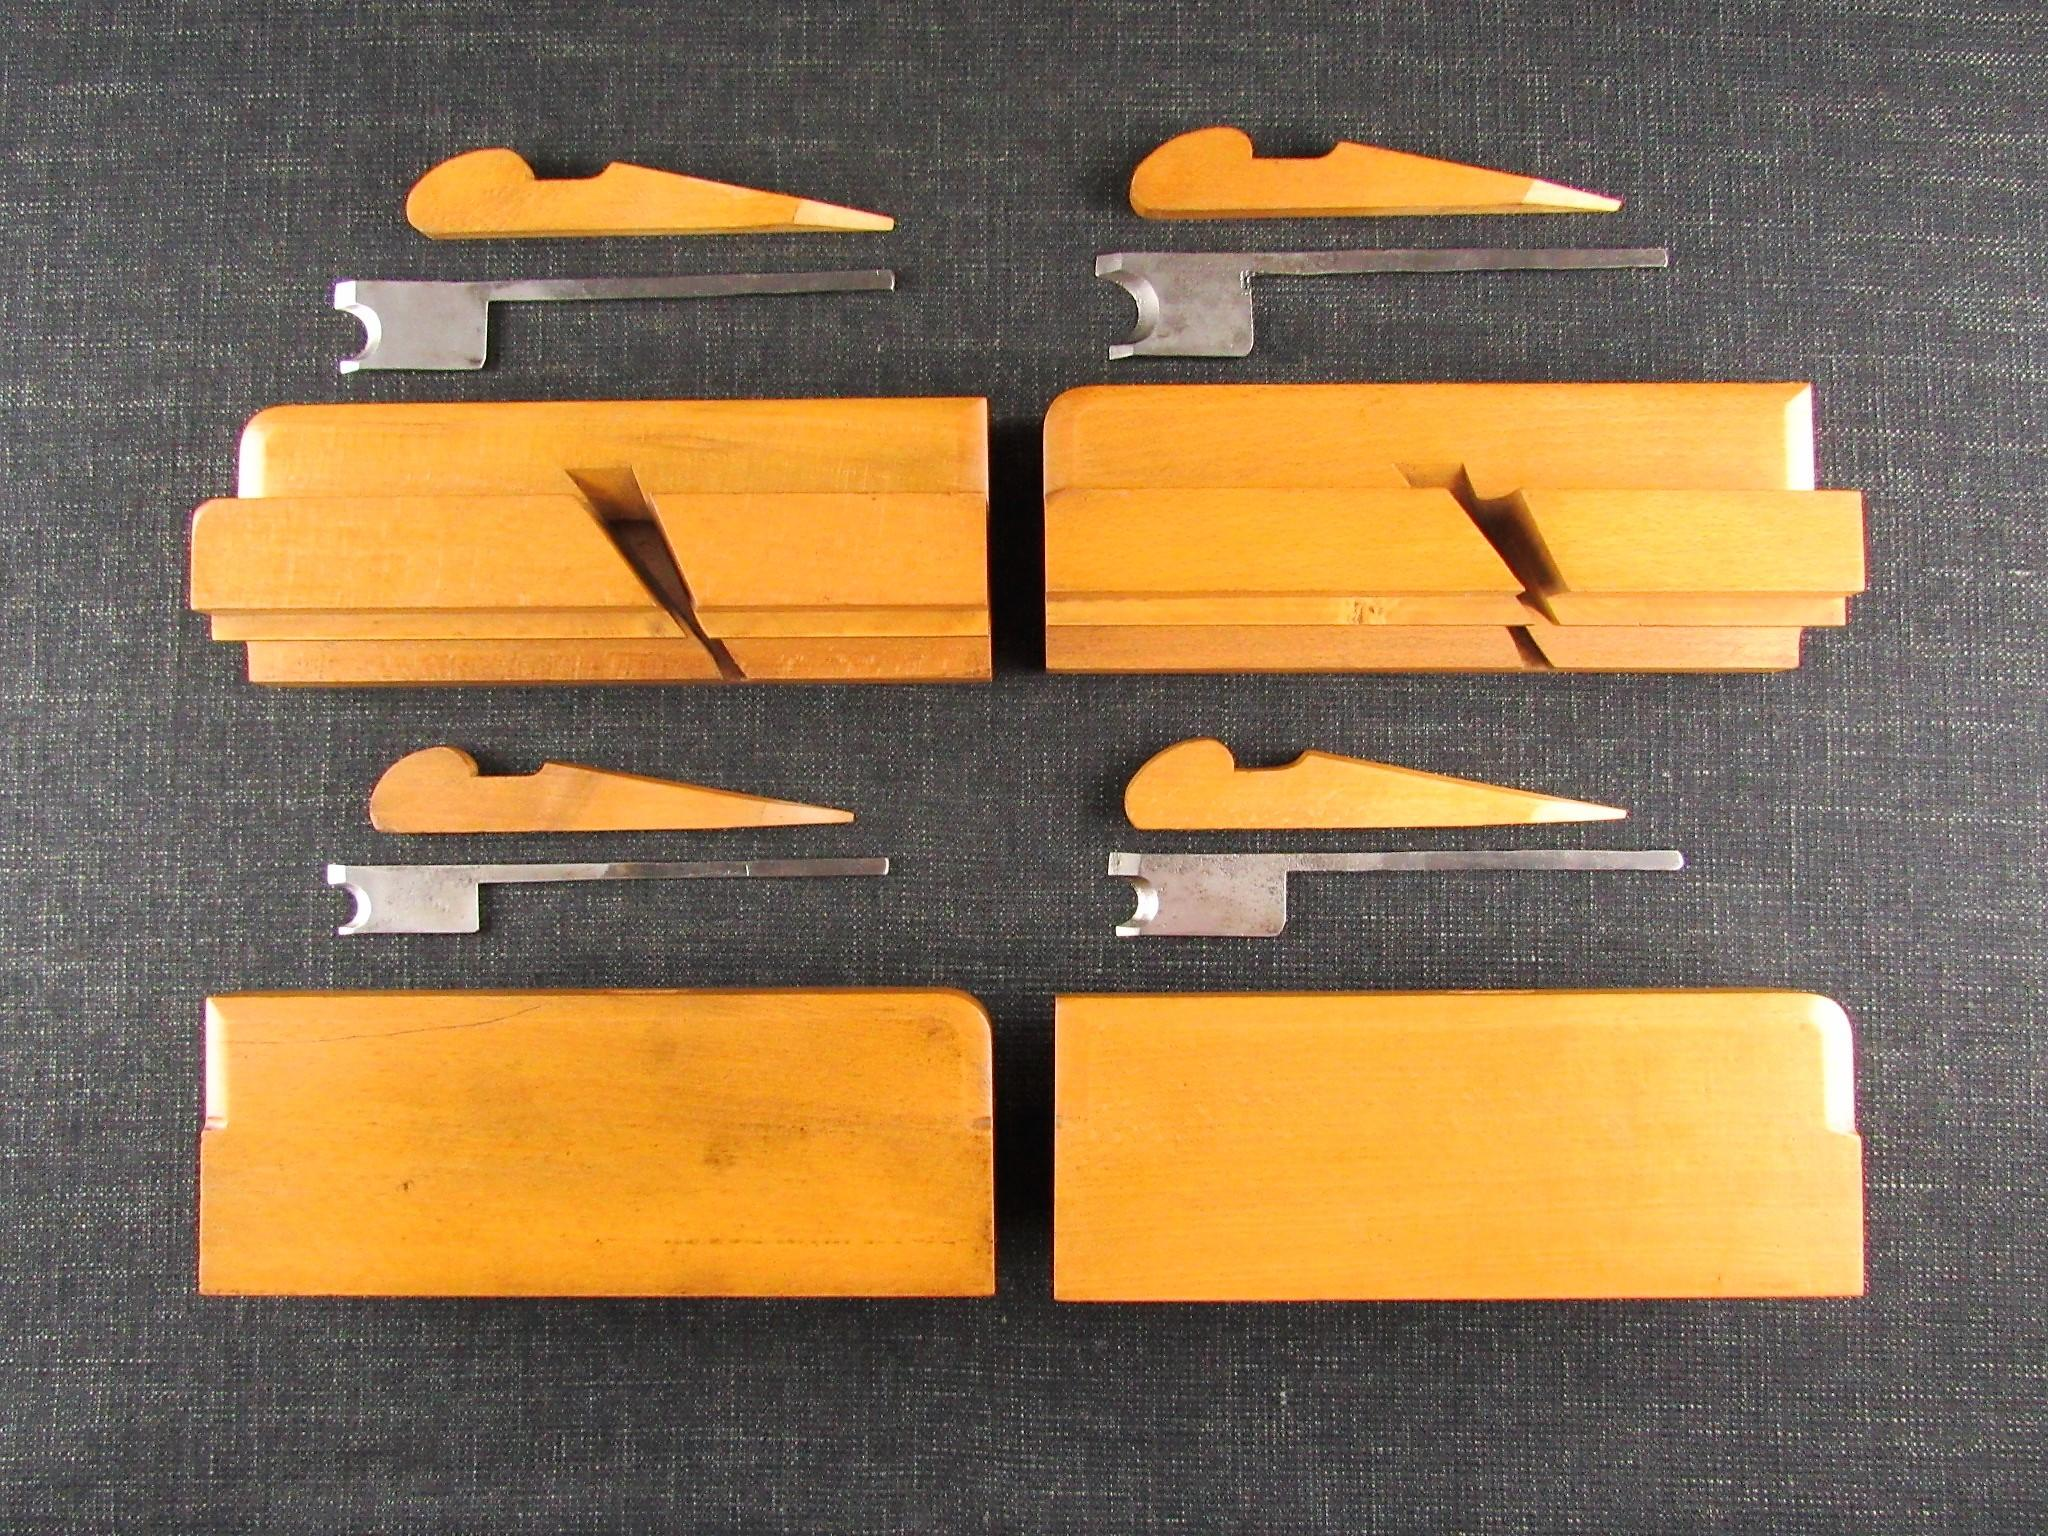 Set of 10 Wooden Side Bead Moulding Planes by VARVILL